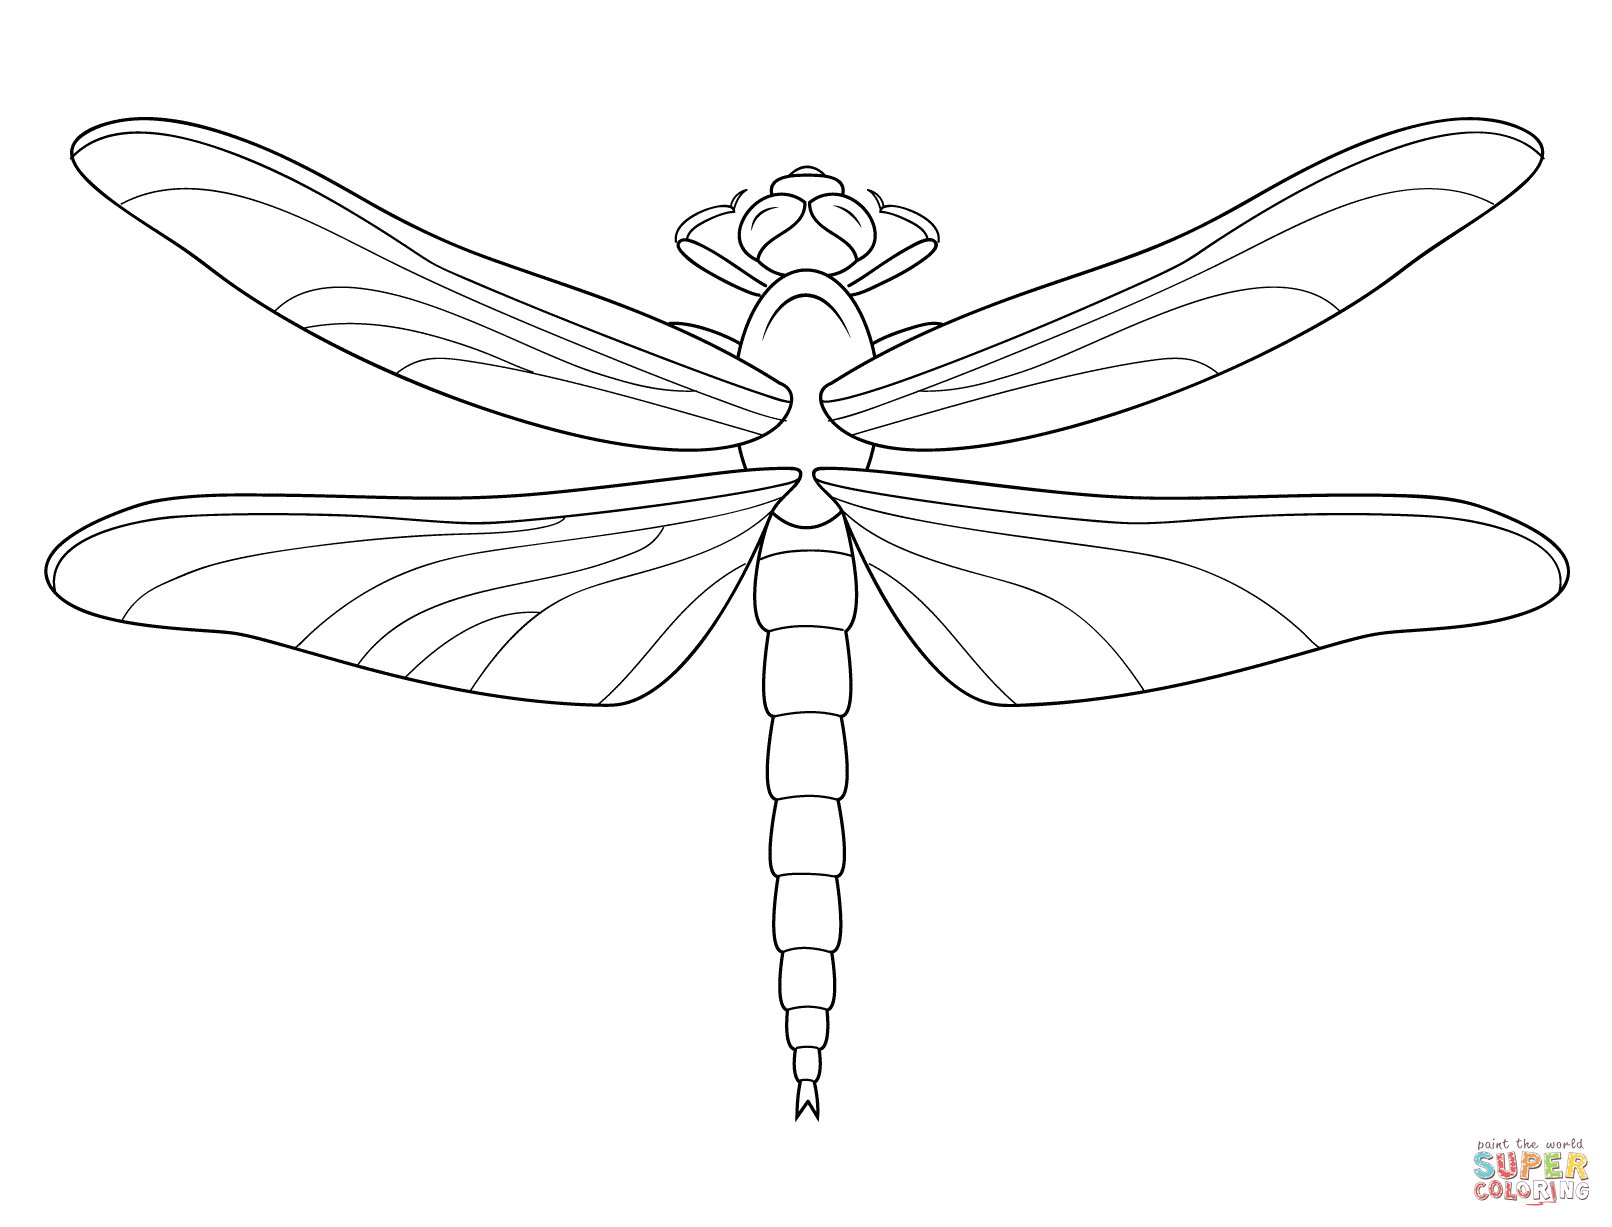 Dragonfly Coloring Page | Free Printable Coloring Pages - Free Printable Pictures Of Dragonflies